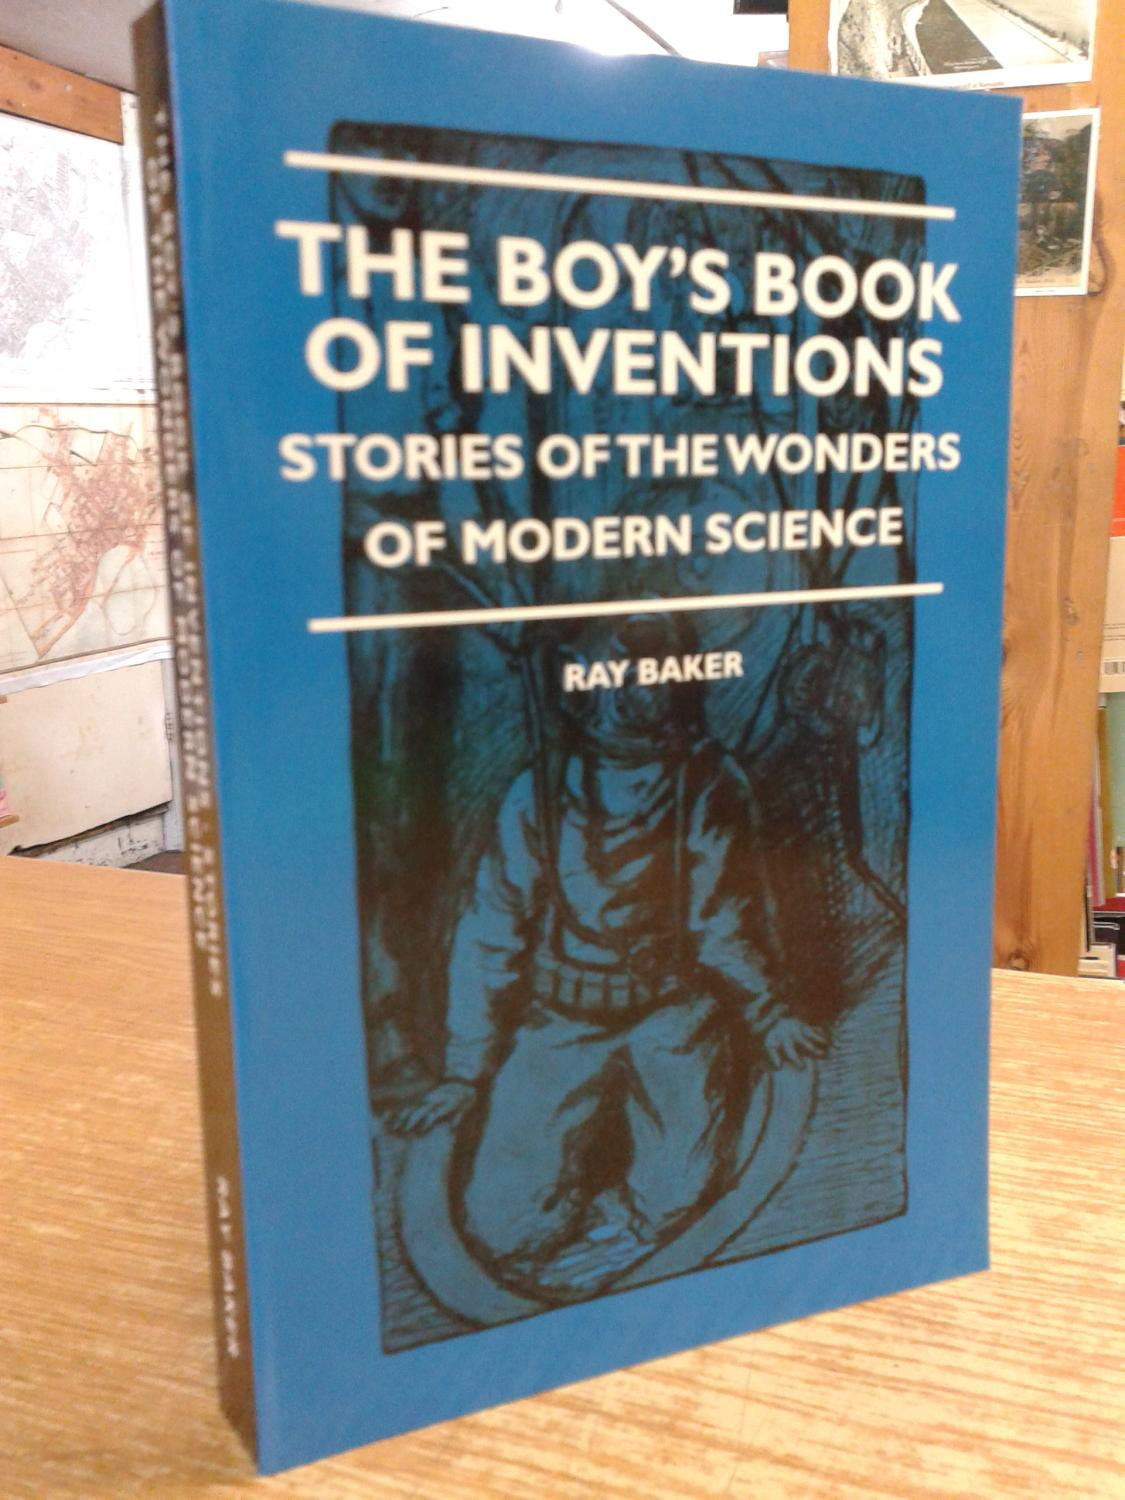 The Boy's Book Of Inventions - Stories Of The Wonders of Modern Science - Ray Baker